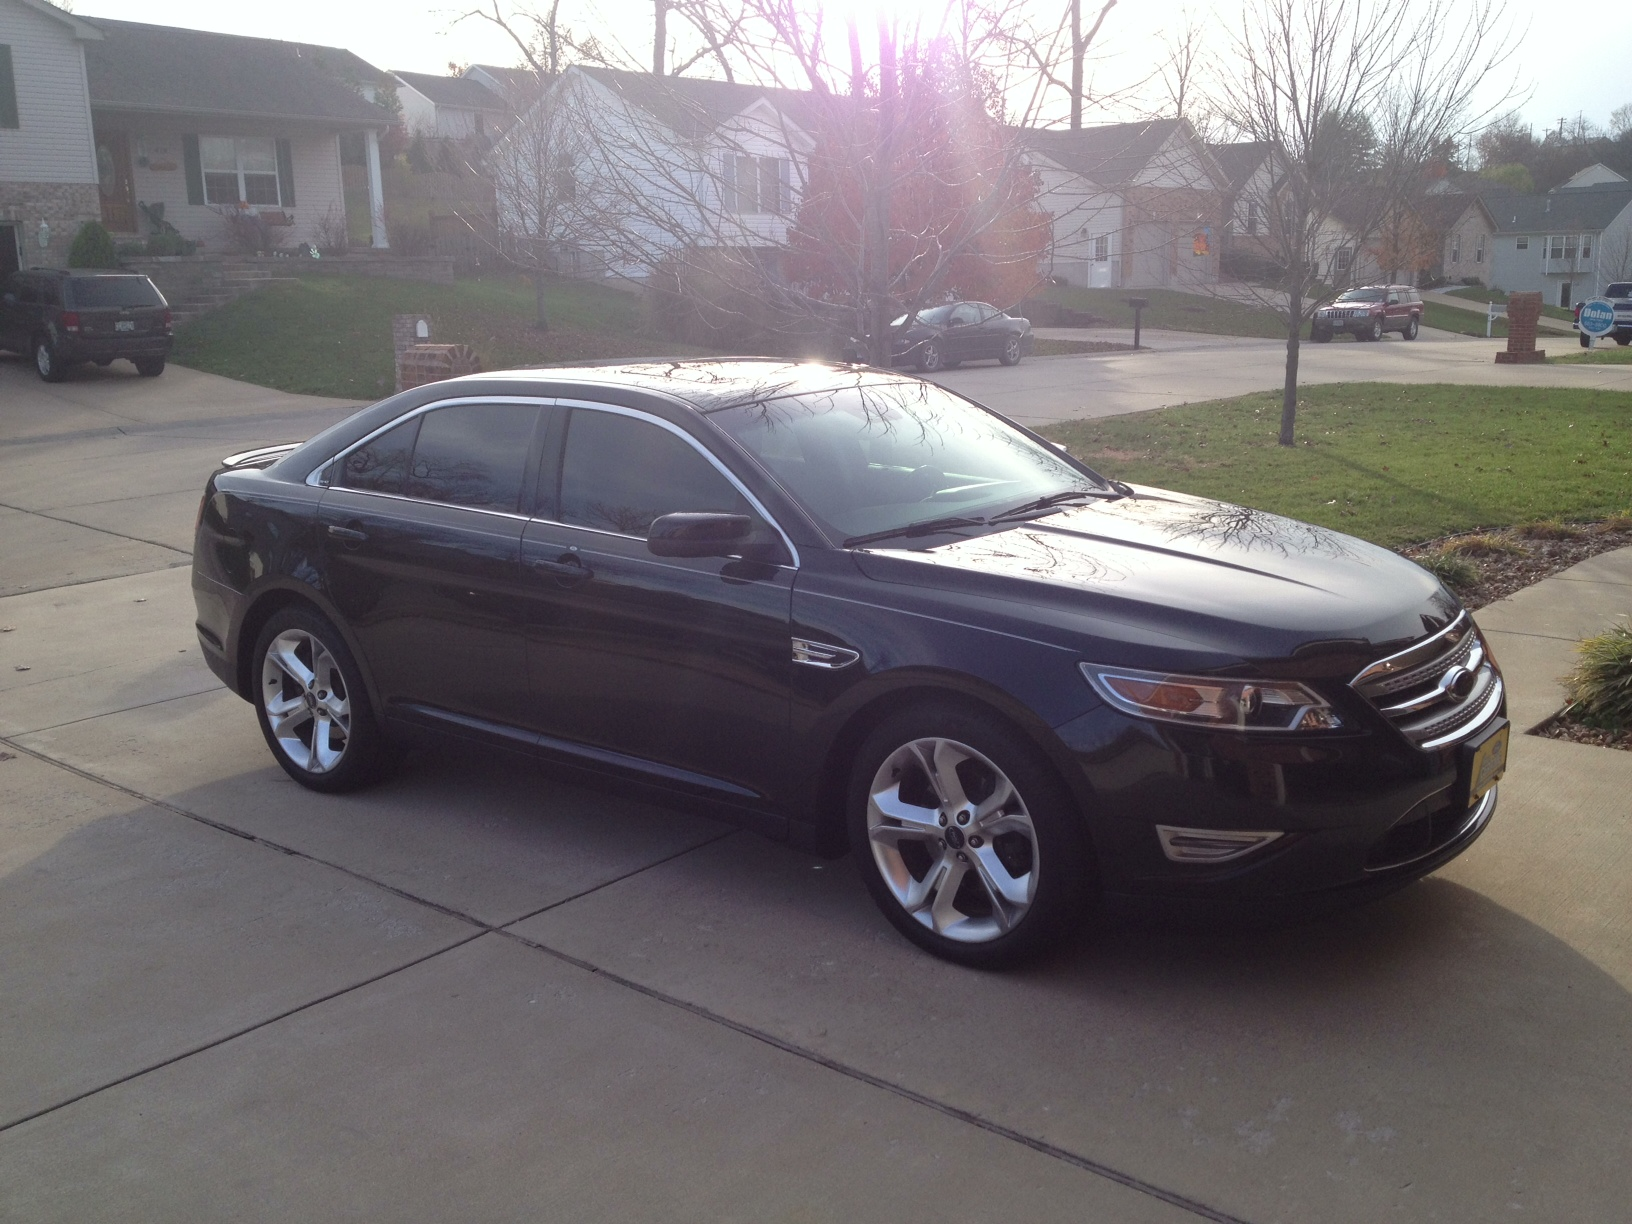 2010 black ford taurus sho picture mods upgrades